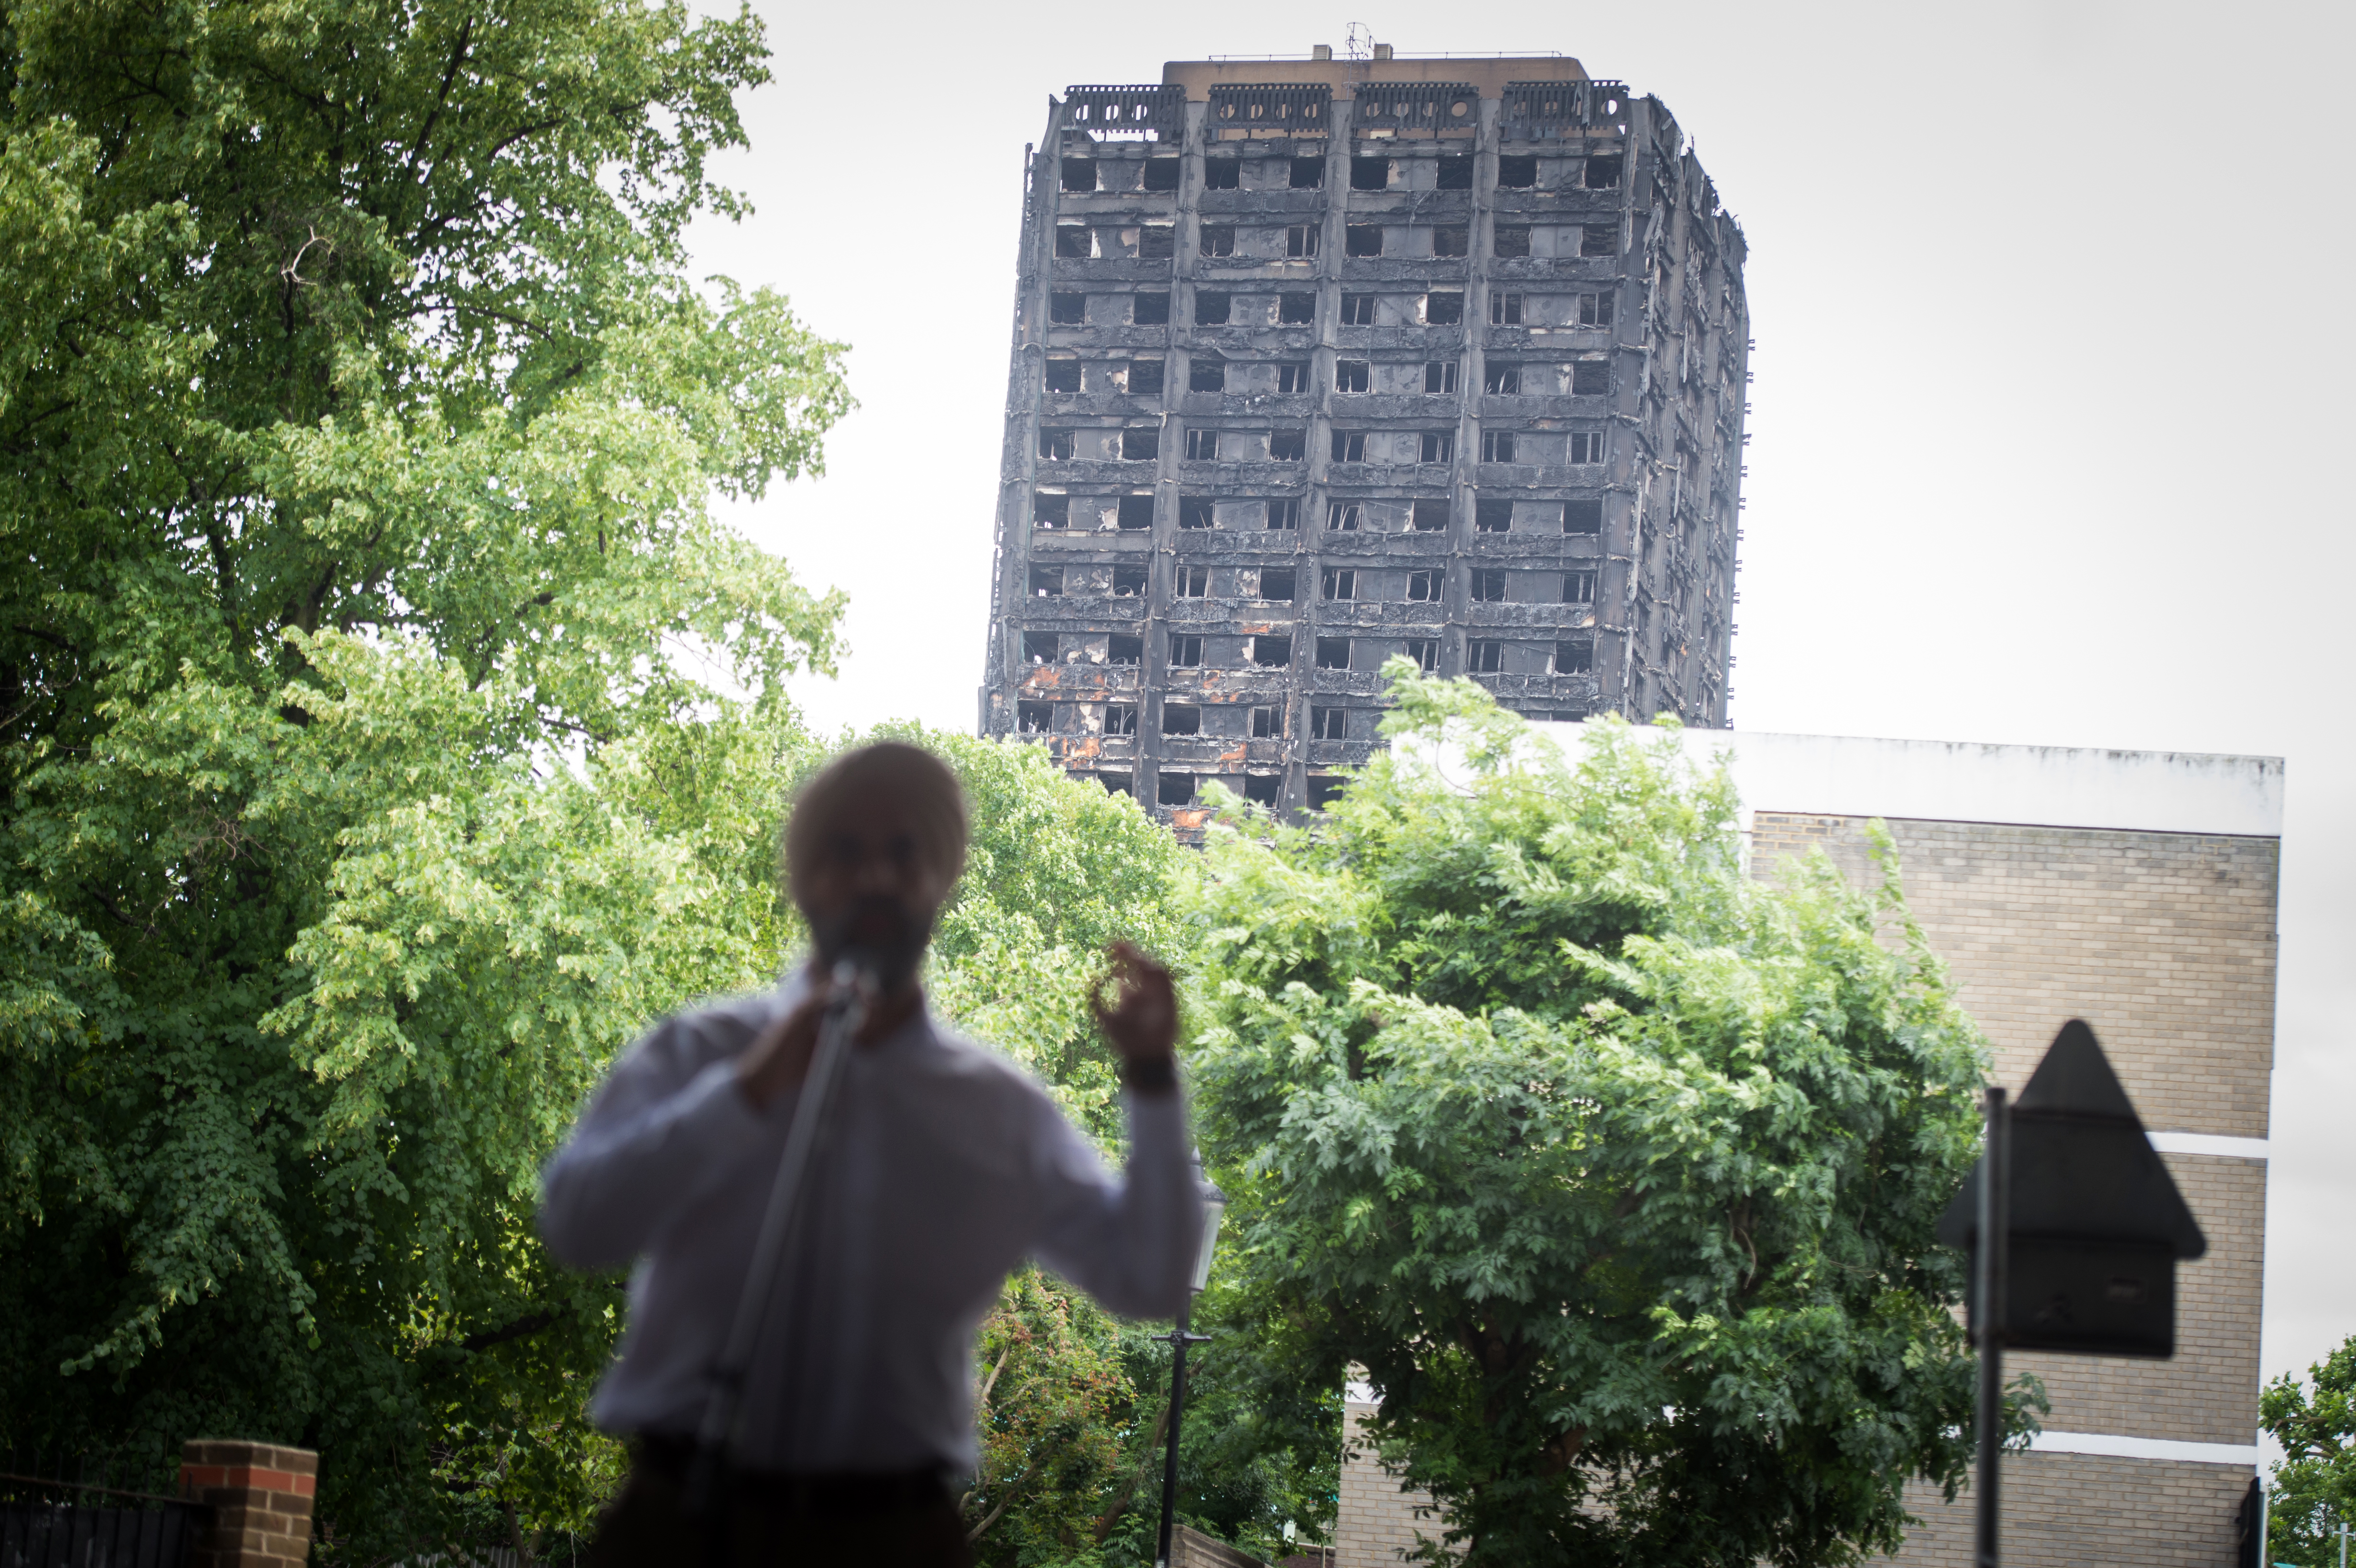 <p>A speaker in front of the burned Grenfell Tower. Flickr/Catholic Church England</p>